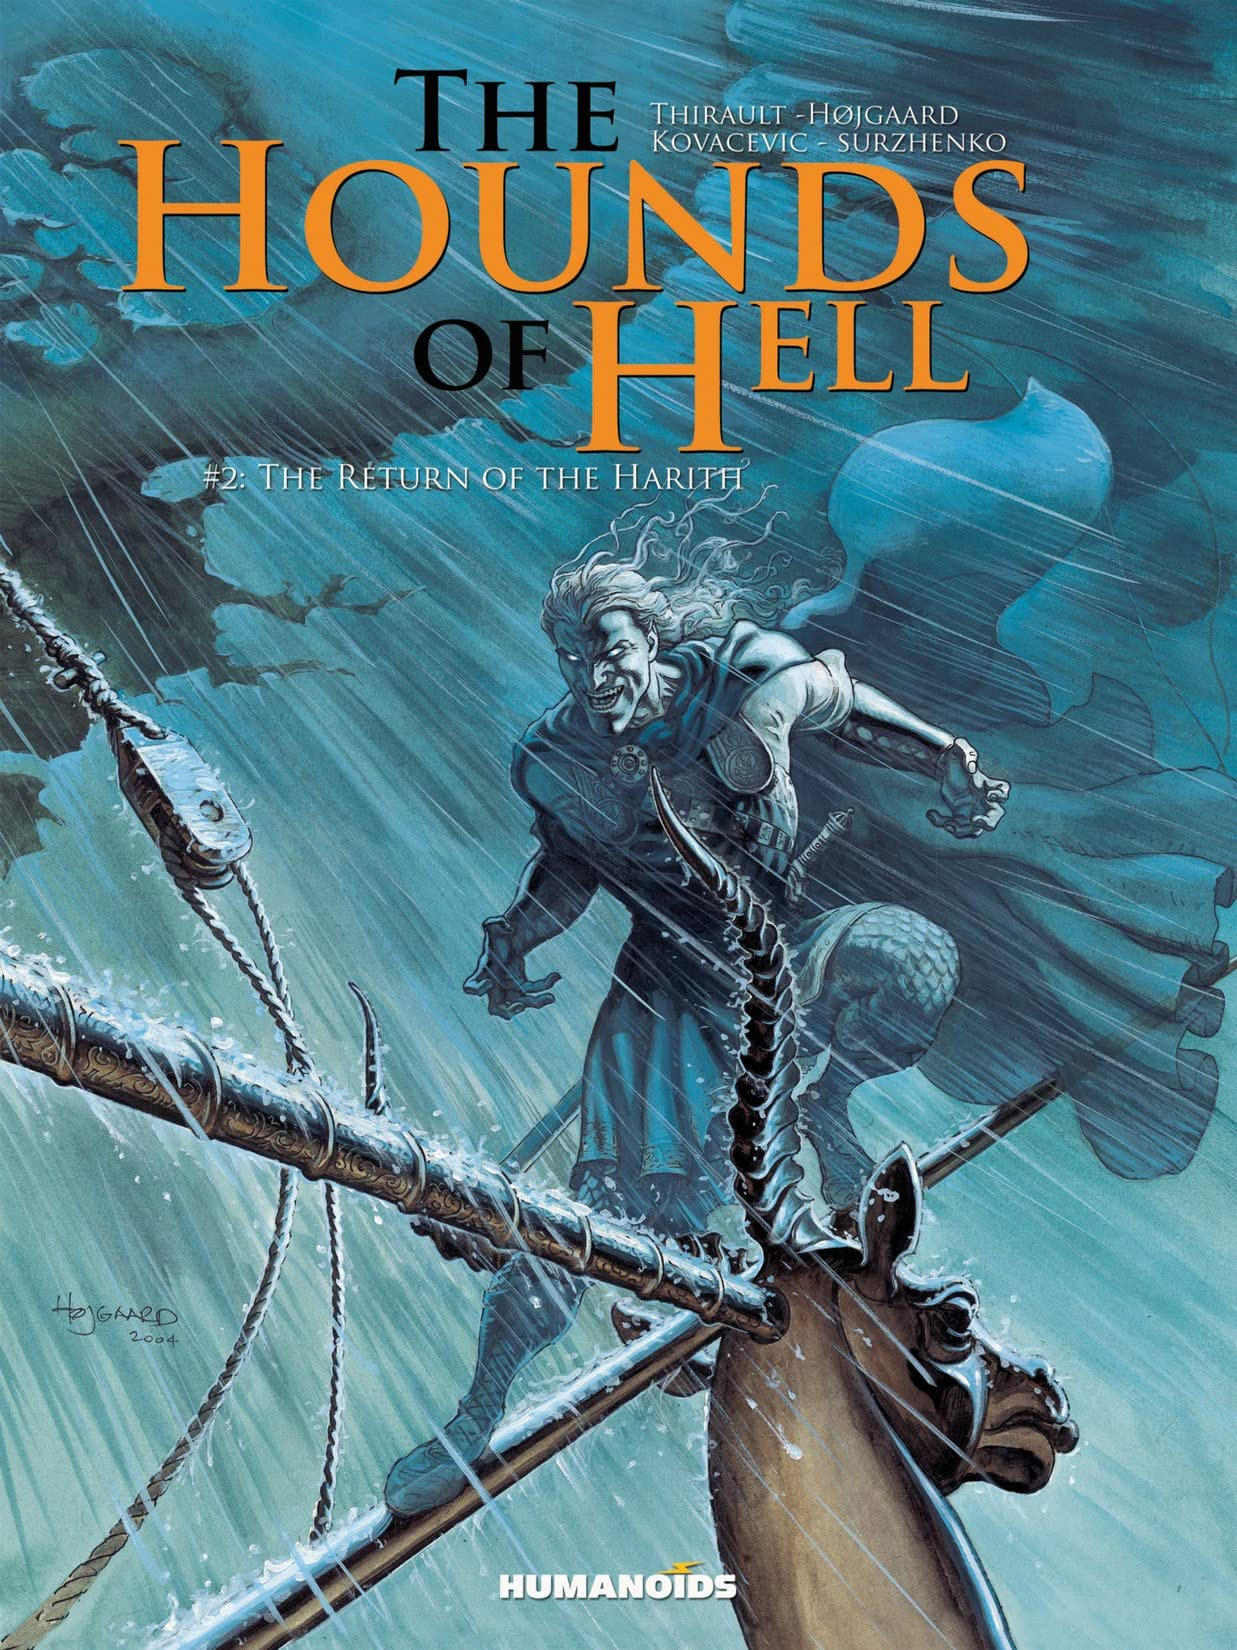 The Hounds of Hell Vol. 2: The Return of the Harith